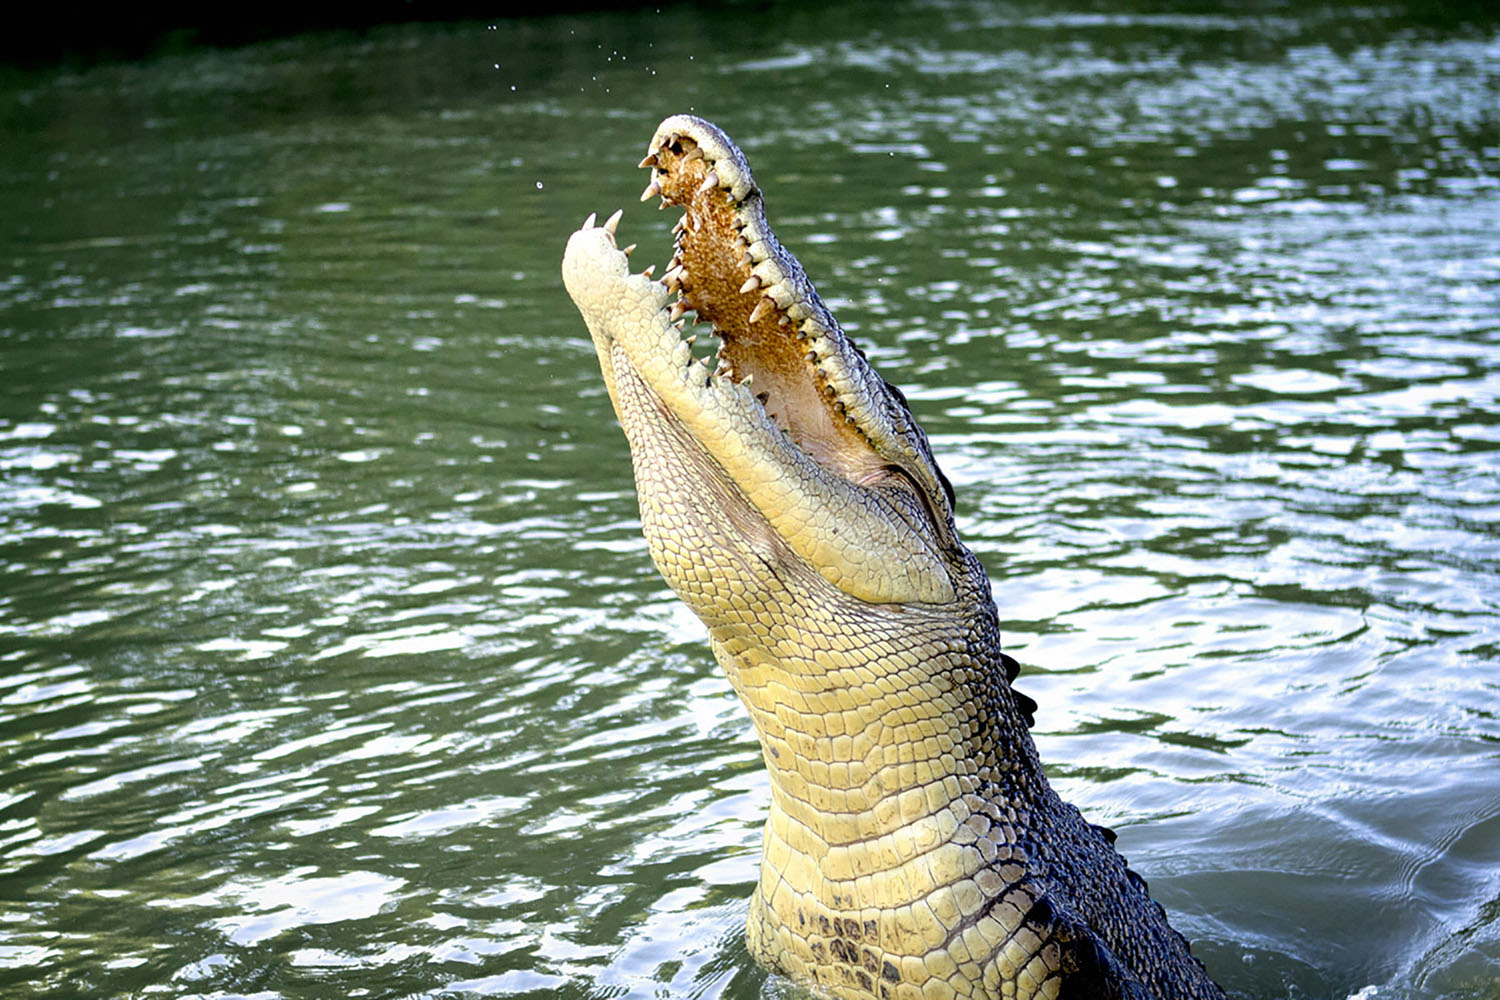 Crocodile jumping out of the water